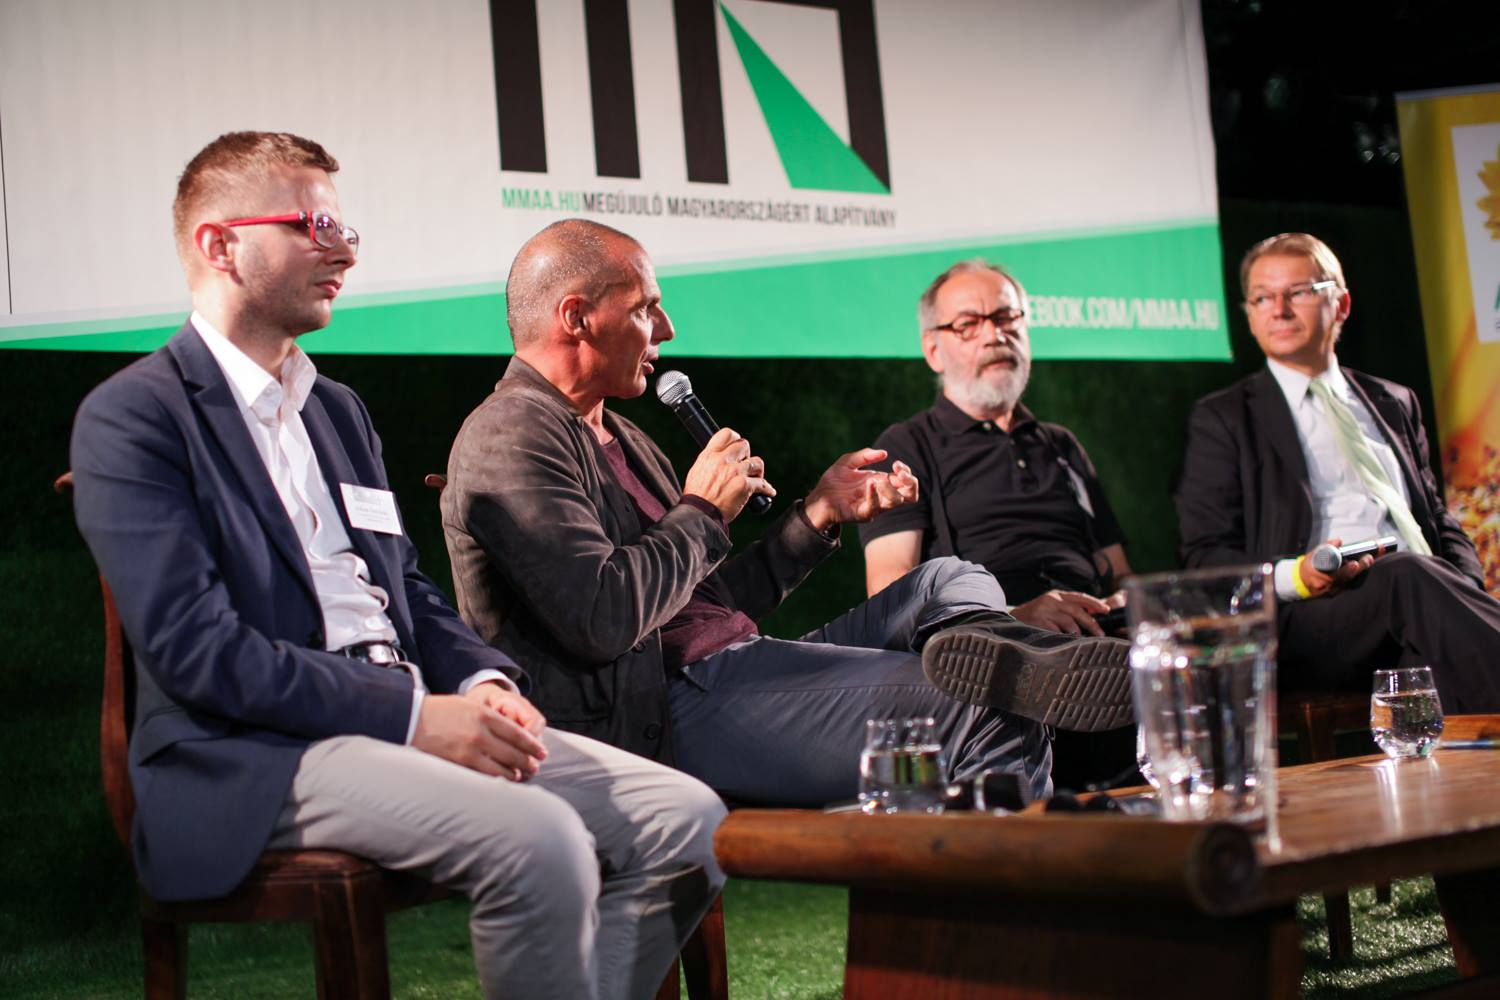 Yanis Varoufakis speaking on a panel at the international conference: The Future of Europe - The Europe of the Future? Photo: Progressive Hungary Foundation